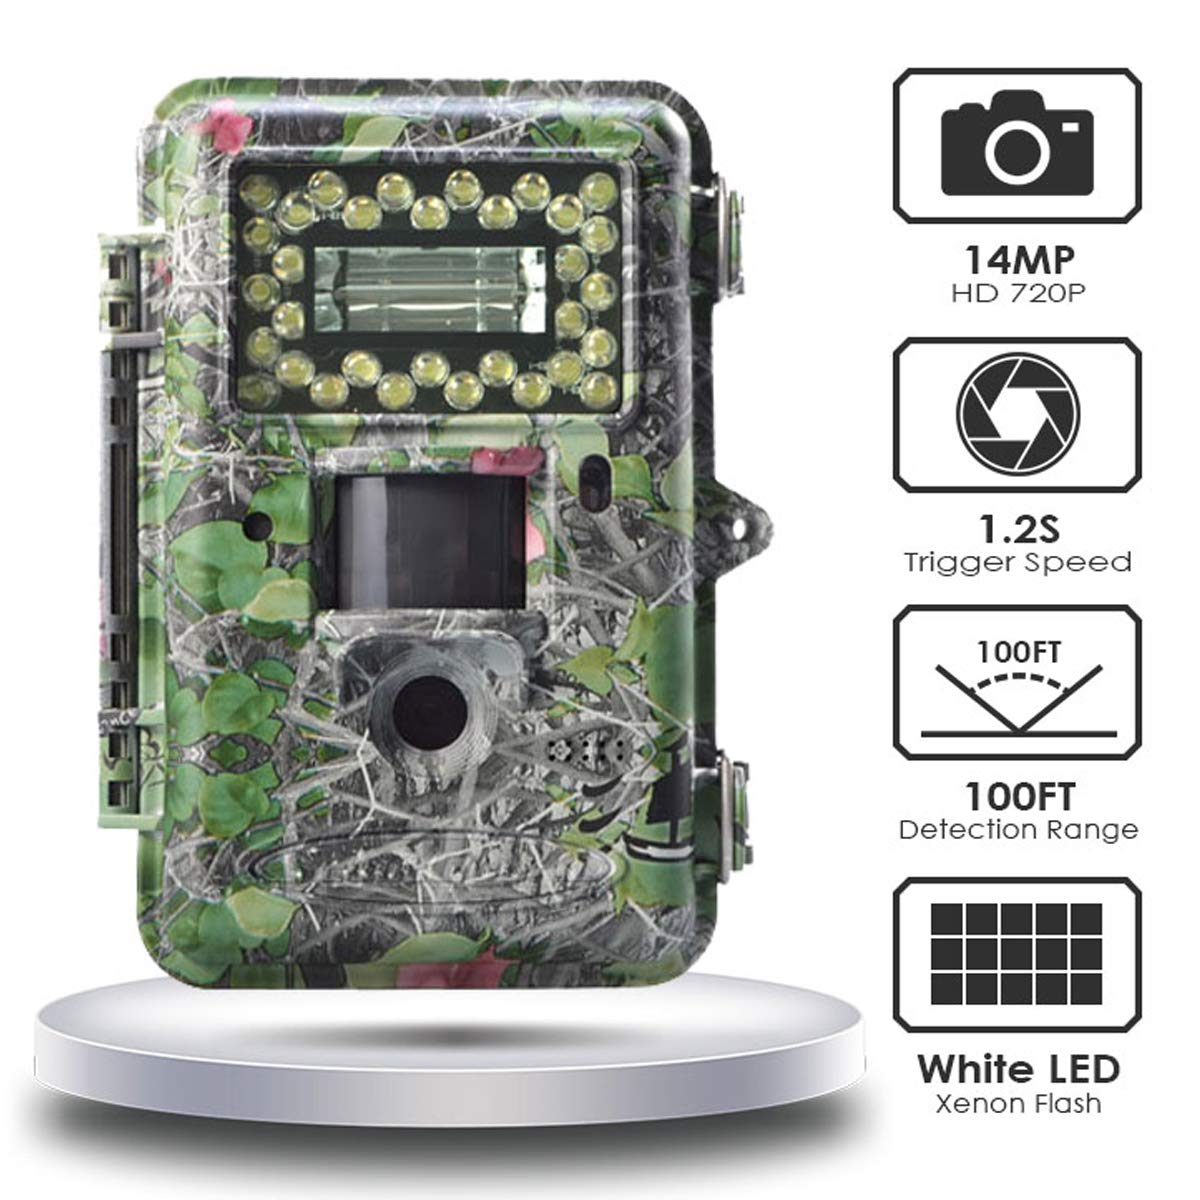 Hunting Trail Game Camera,14MP Scouting Camera 2 LCD 720P 100FT Detection Range White Flash LED Trail Cameras Support Color Picture and Video at Night for Hunting,Farm Monitoring,Security